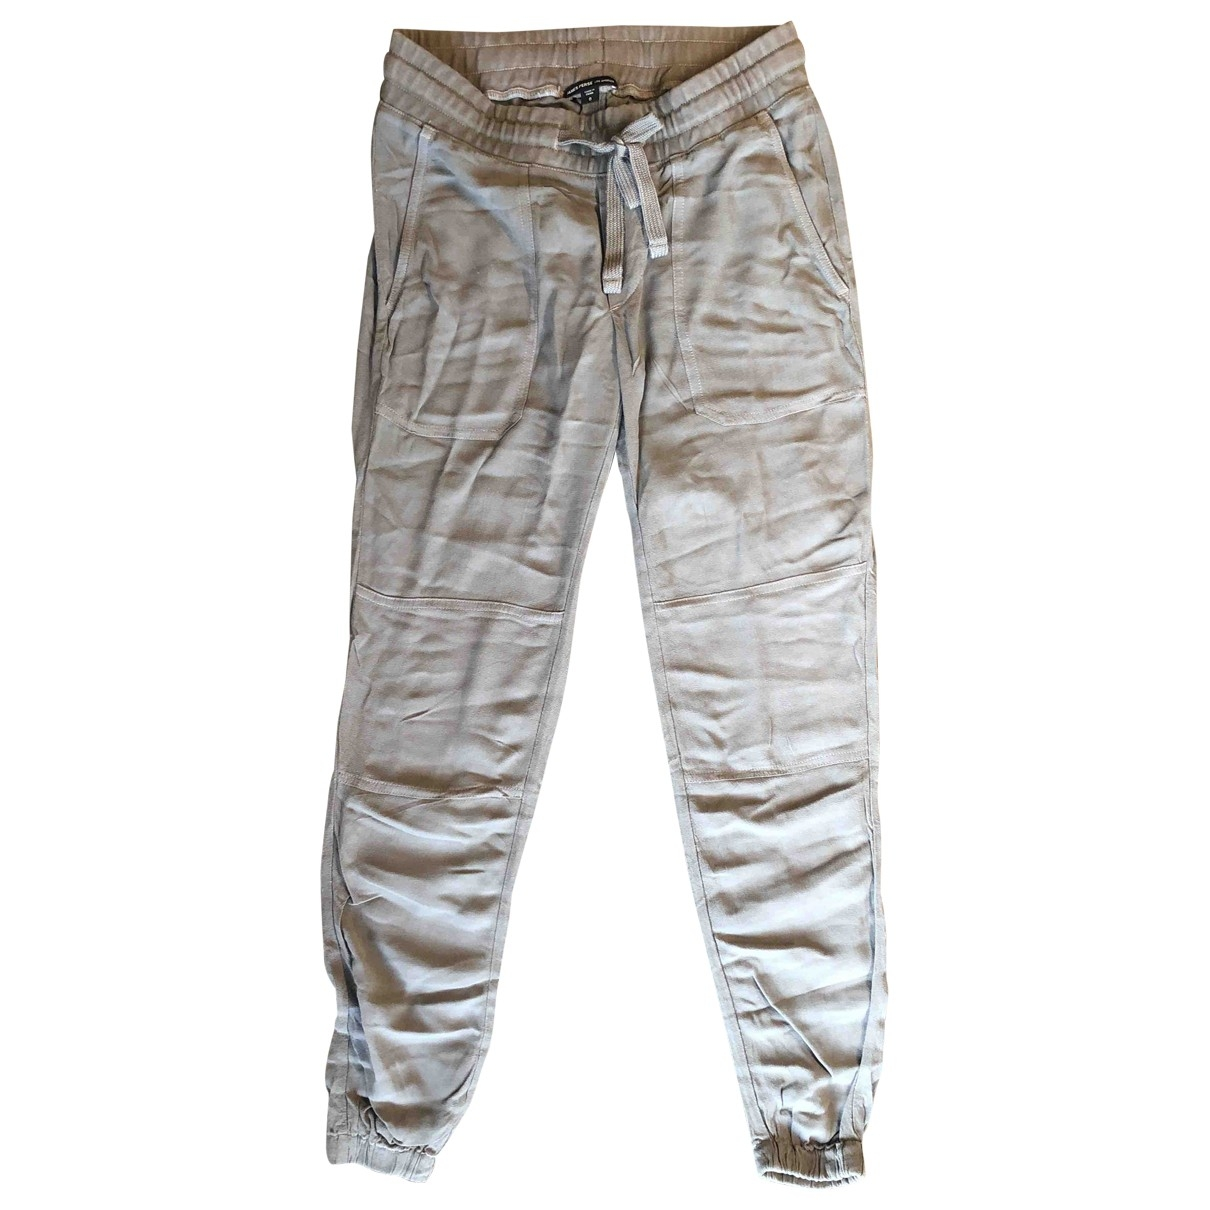 James Perse \N Trousers for Women 0 0-5